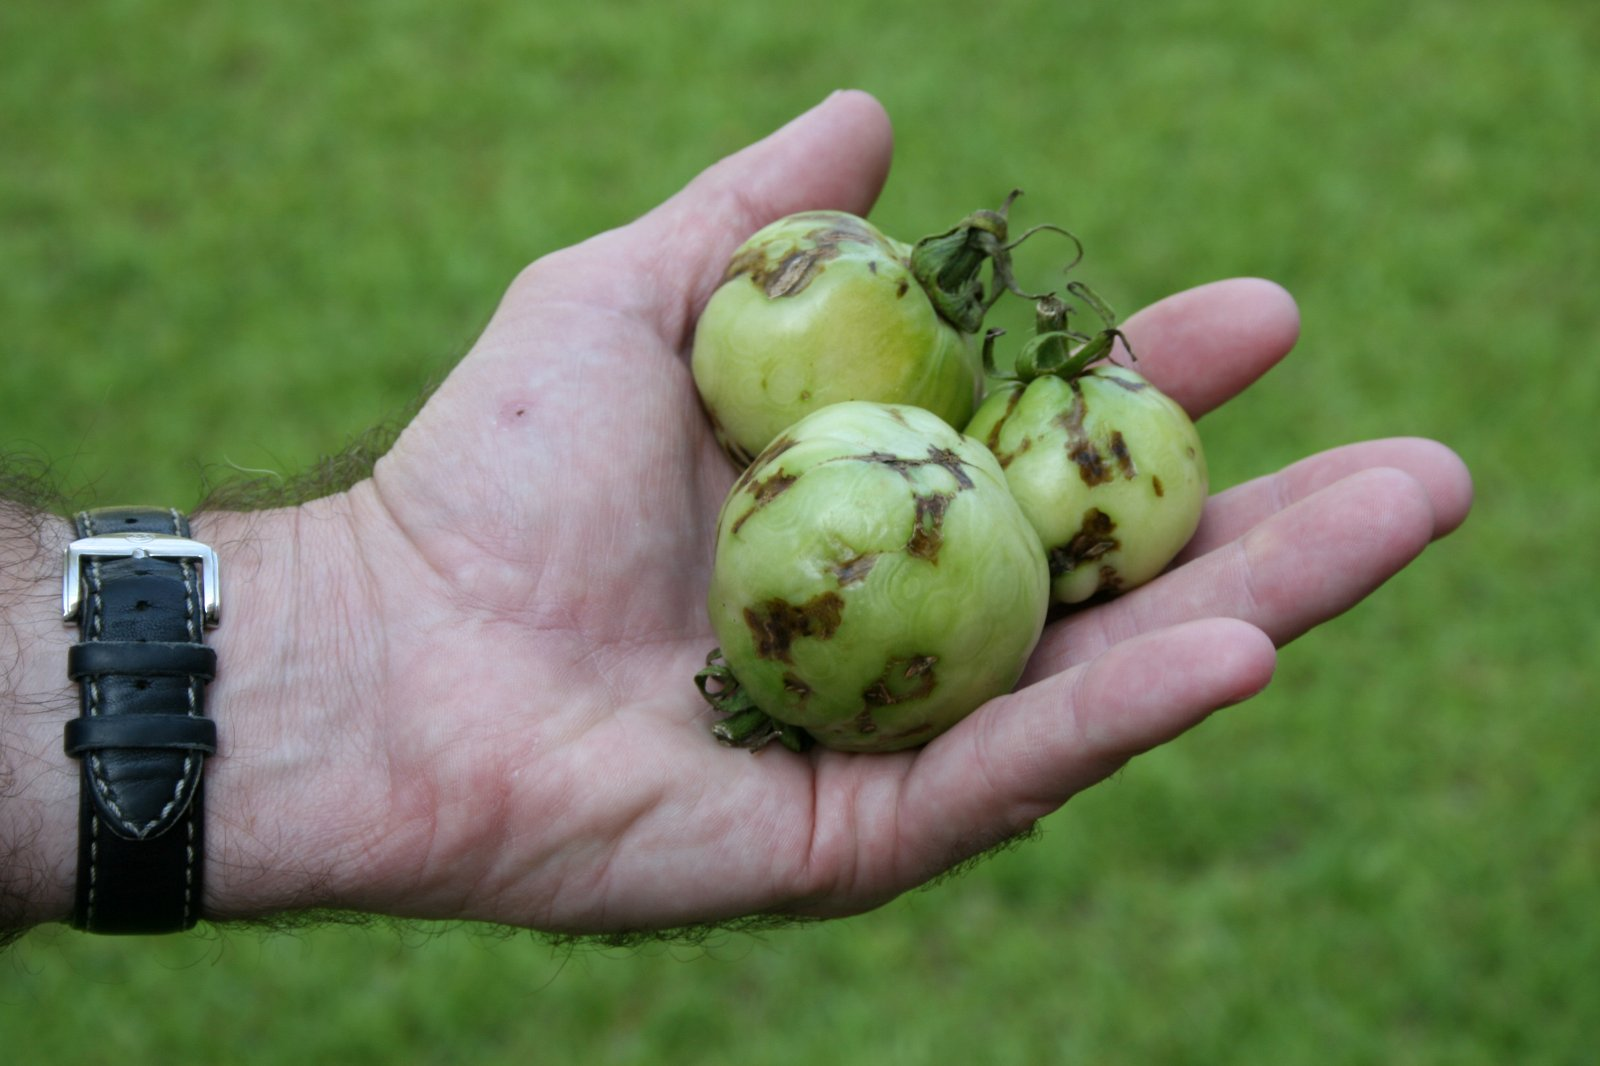 Green tomatoes infected with Tomato Spotted Wilt Virus.